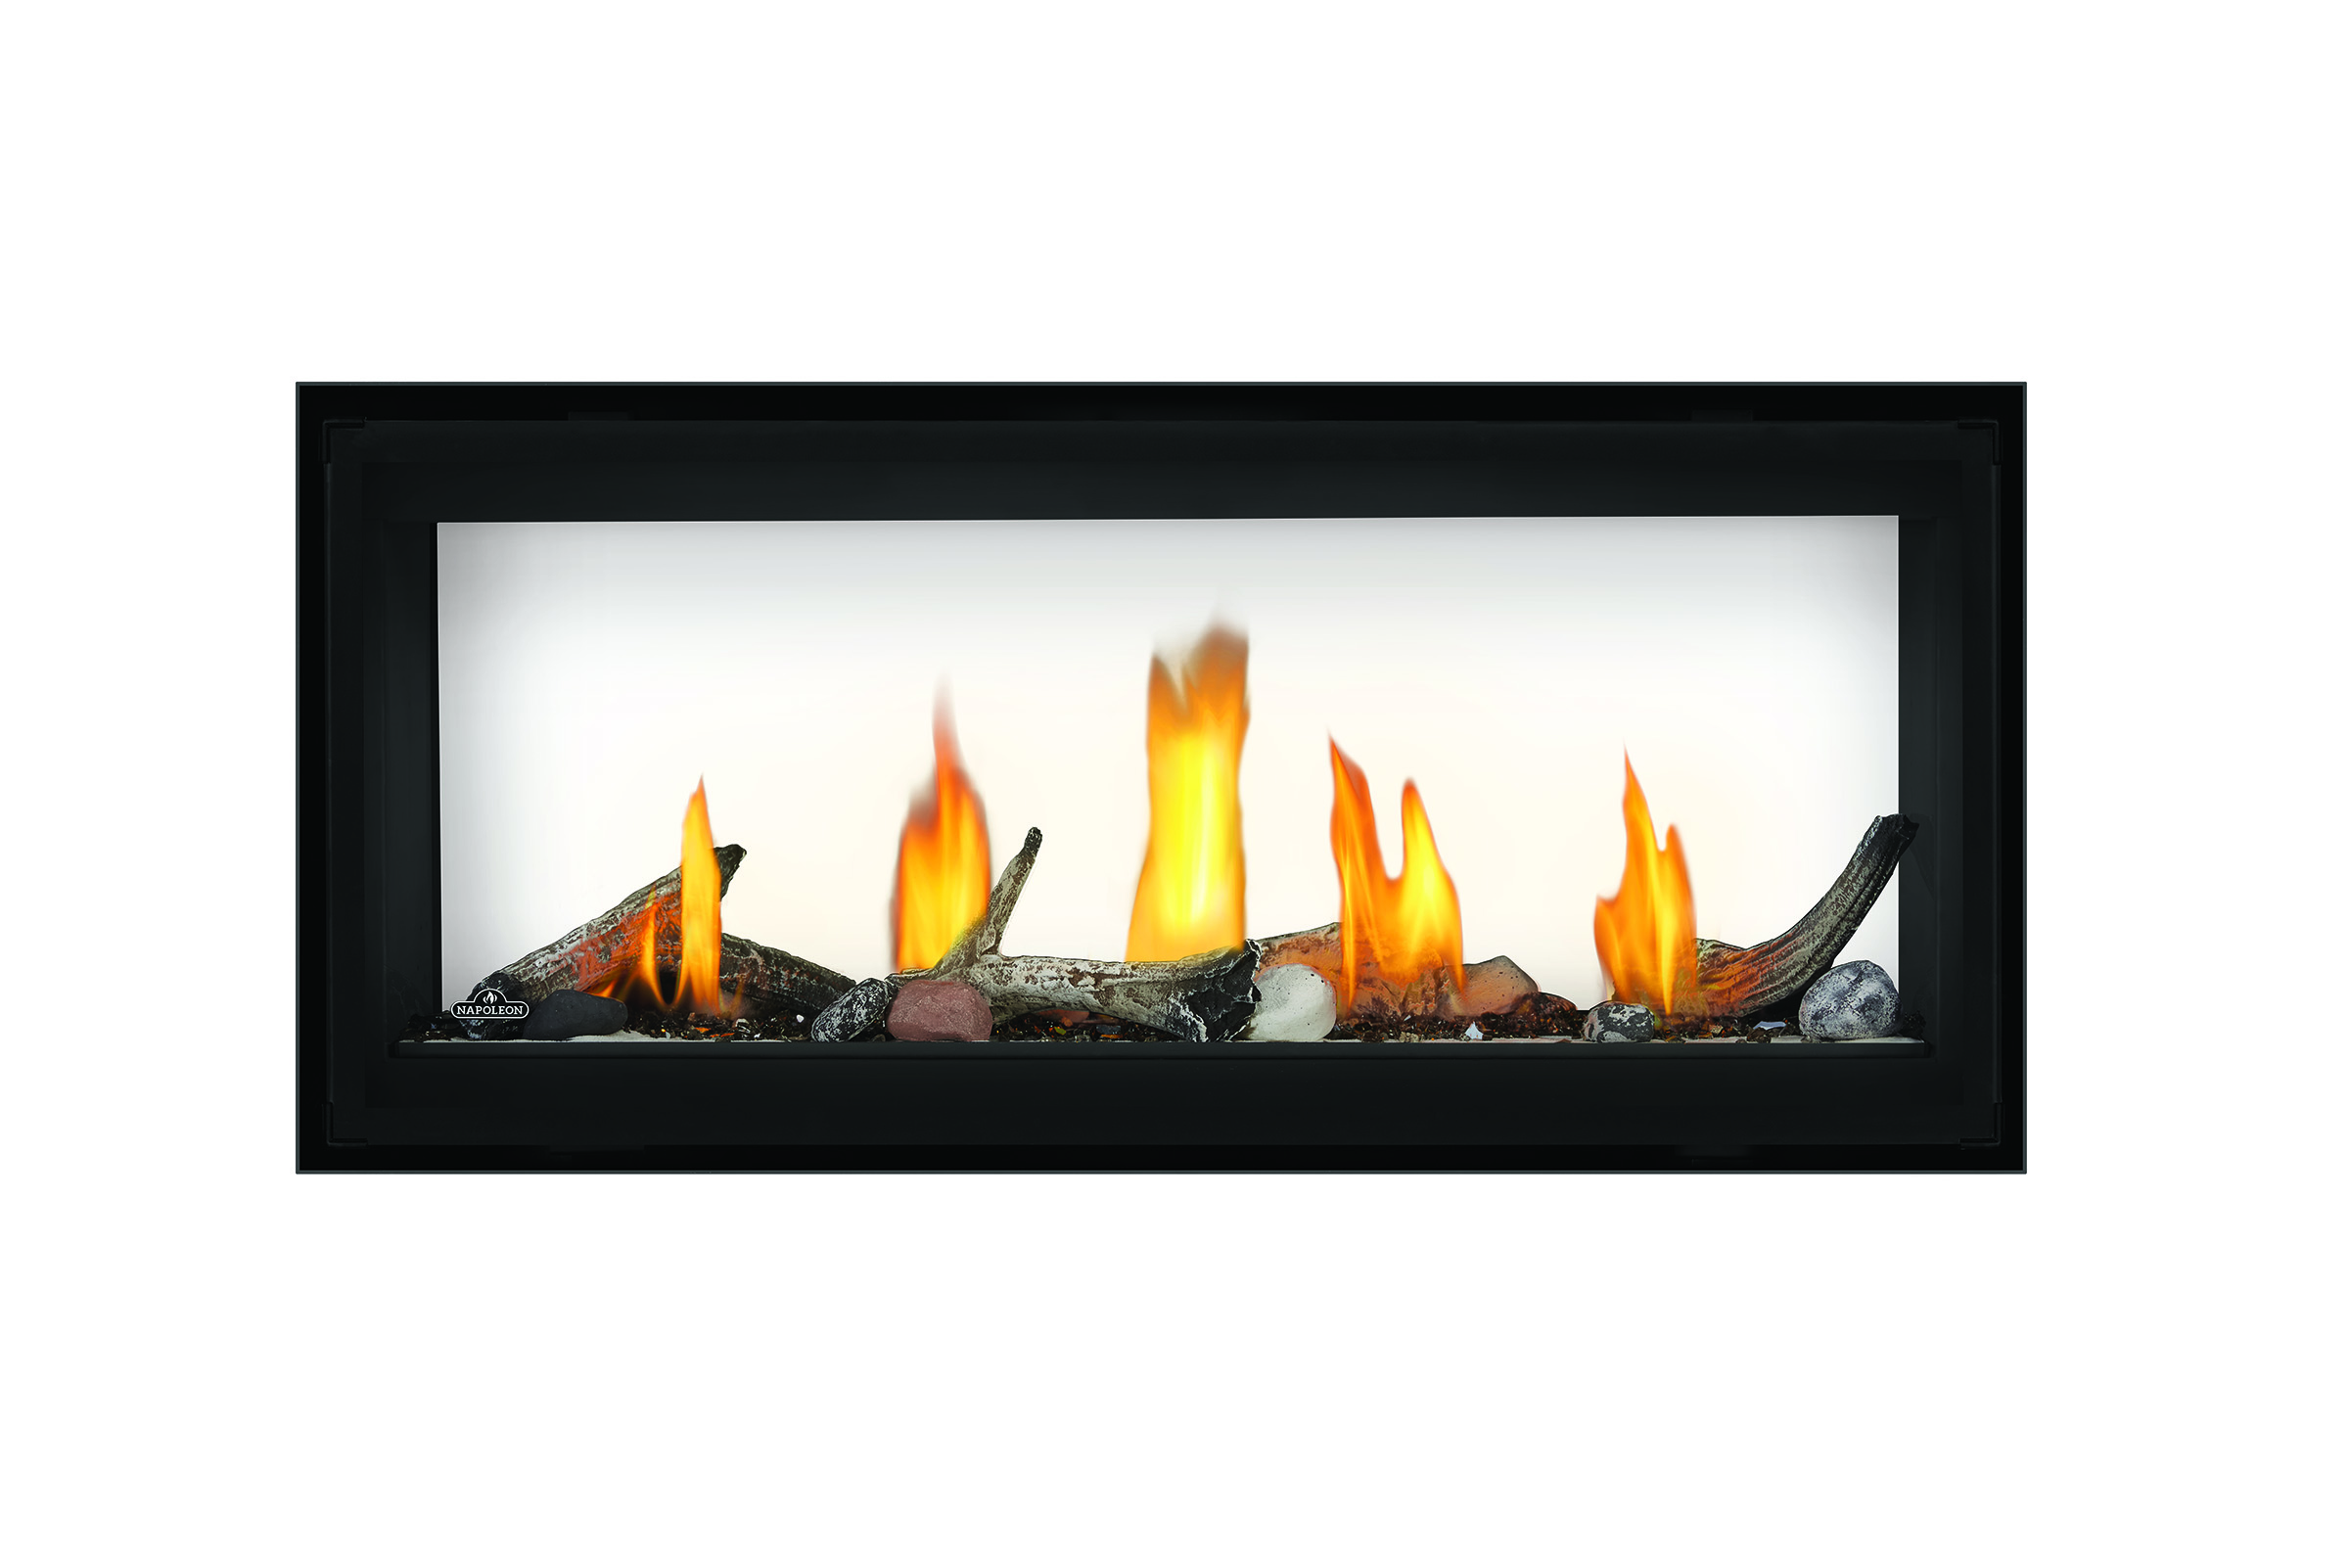 Napoleon Luxuria Series 38 Linear Gas Fireplace H2oasis